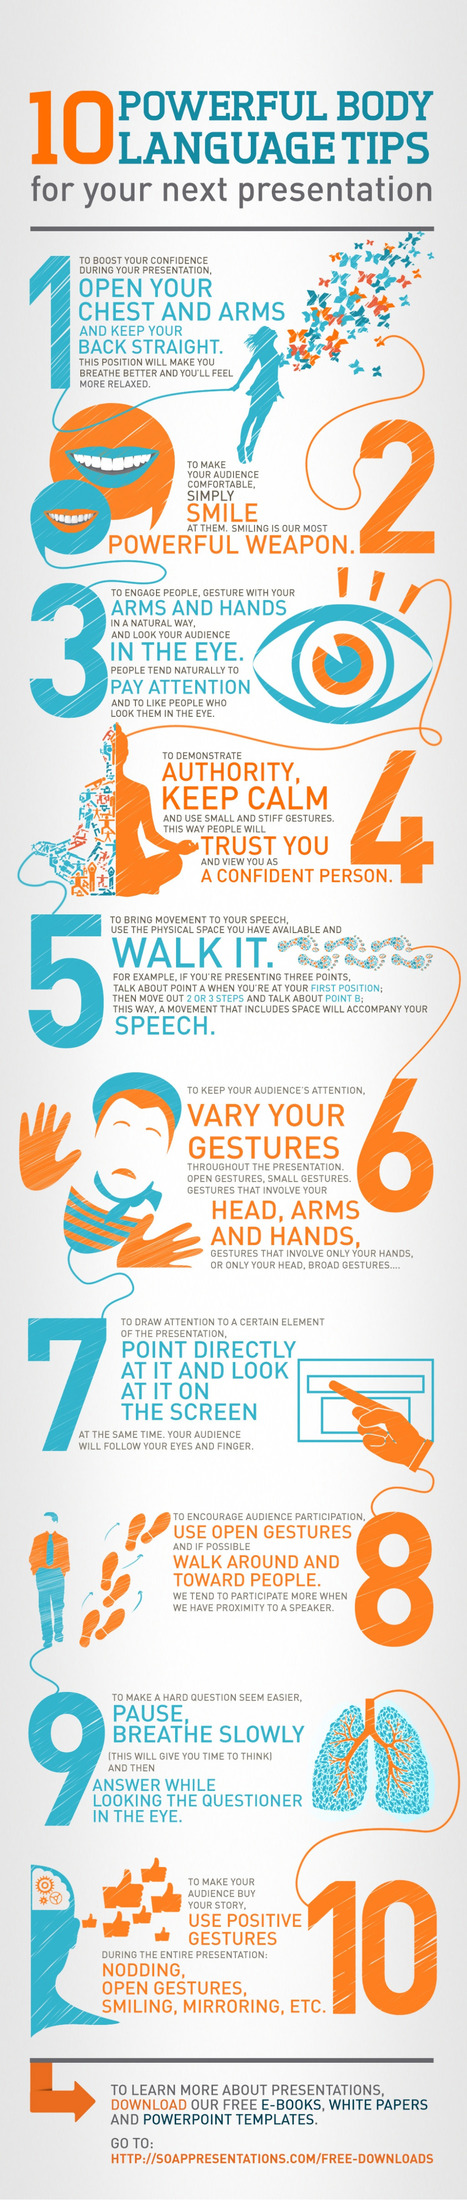 10 Body Language Tips Every Speaker Must Know | Knowledge Broker | Scoop.it